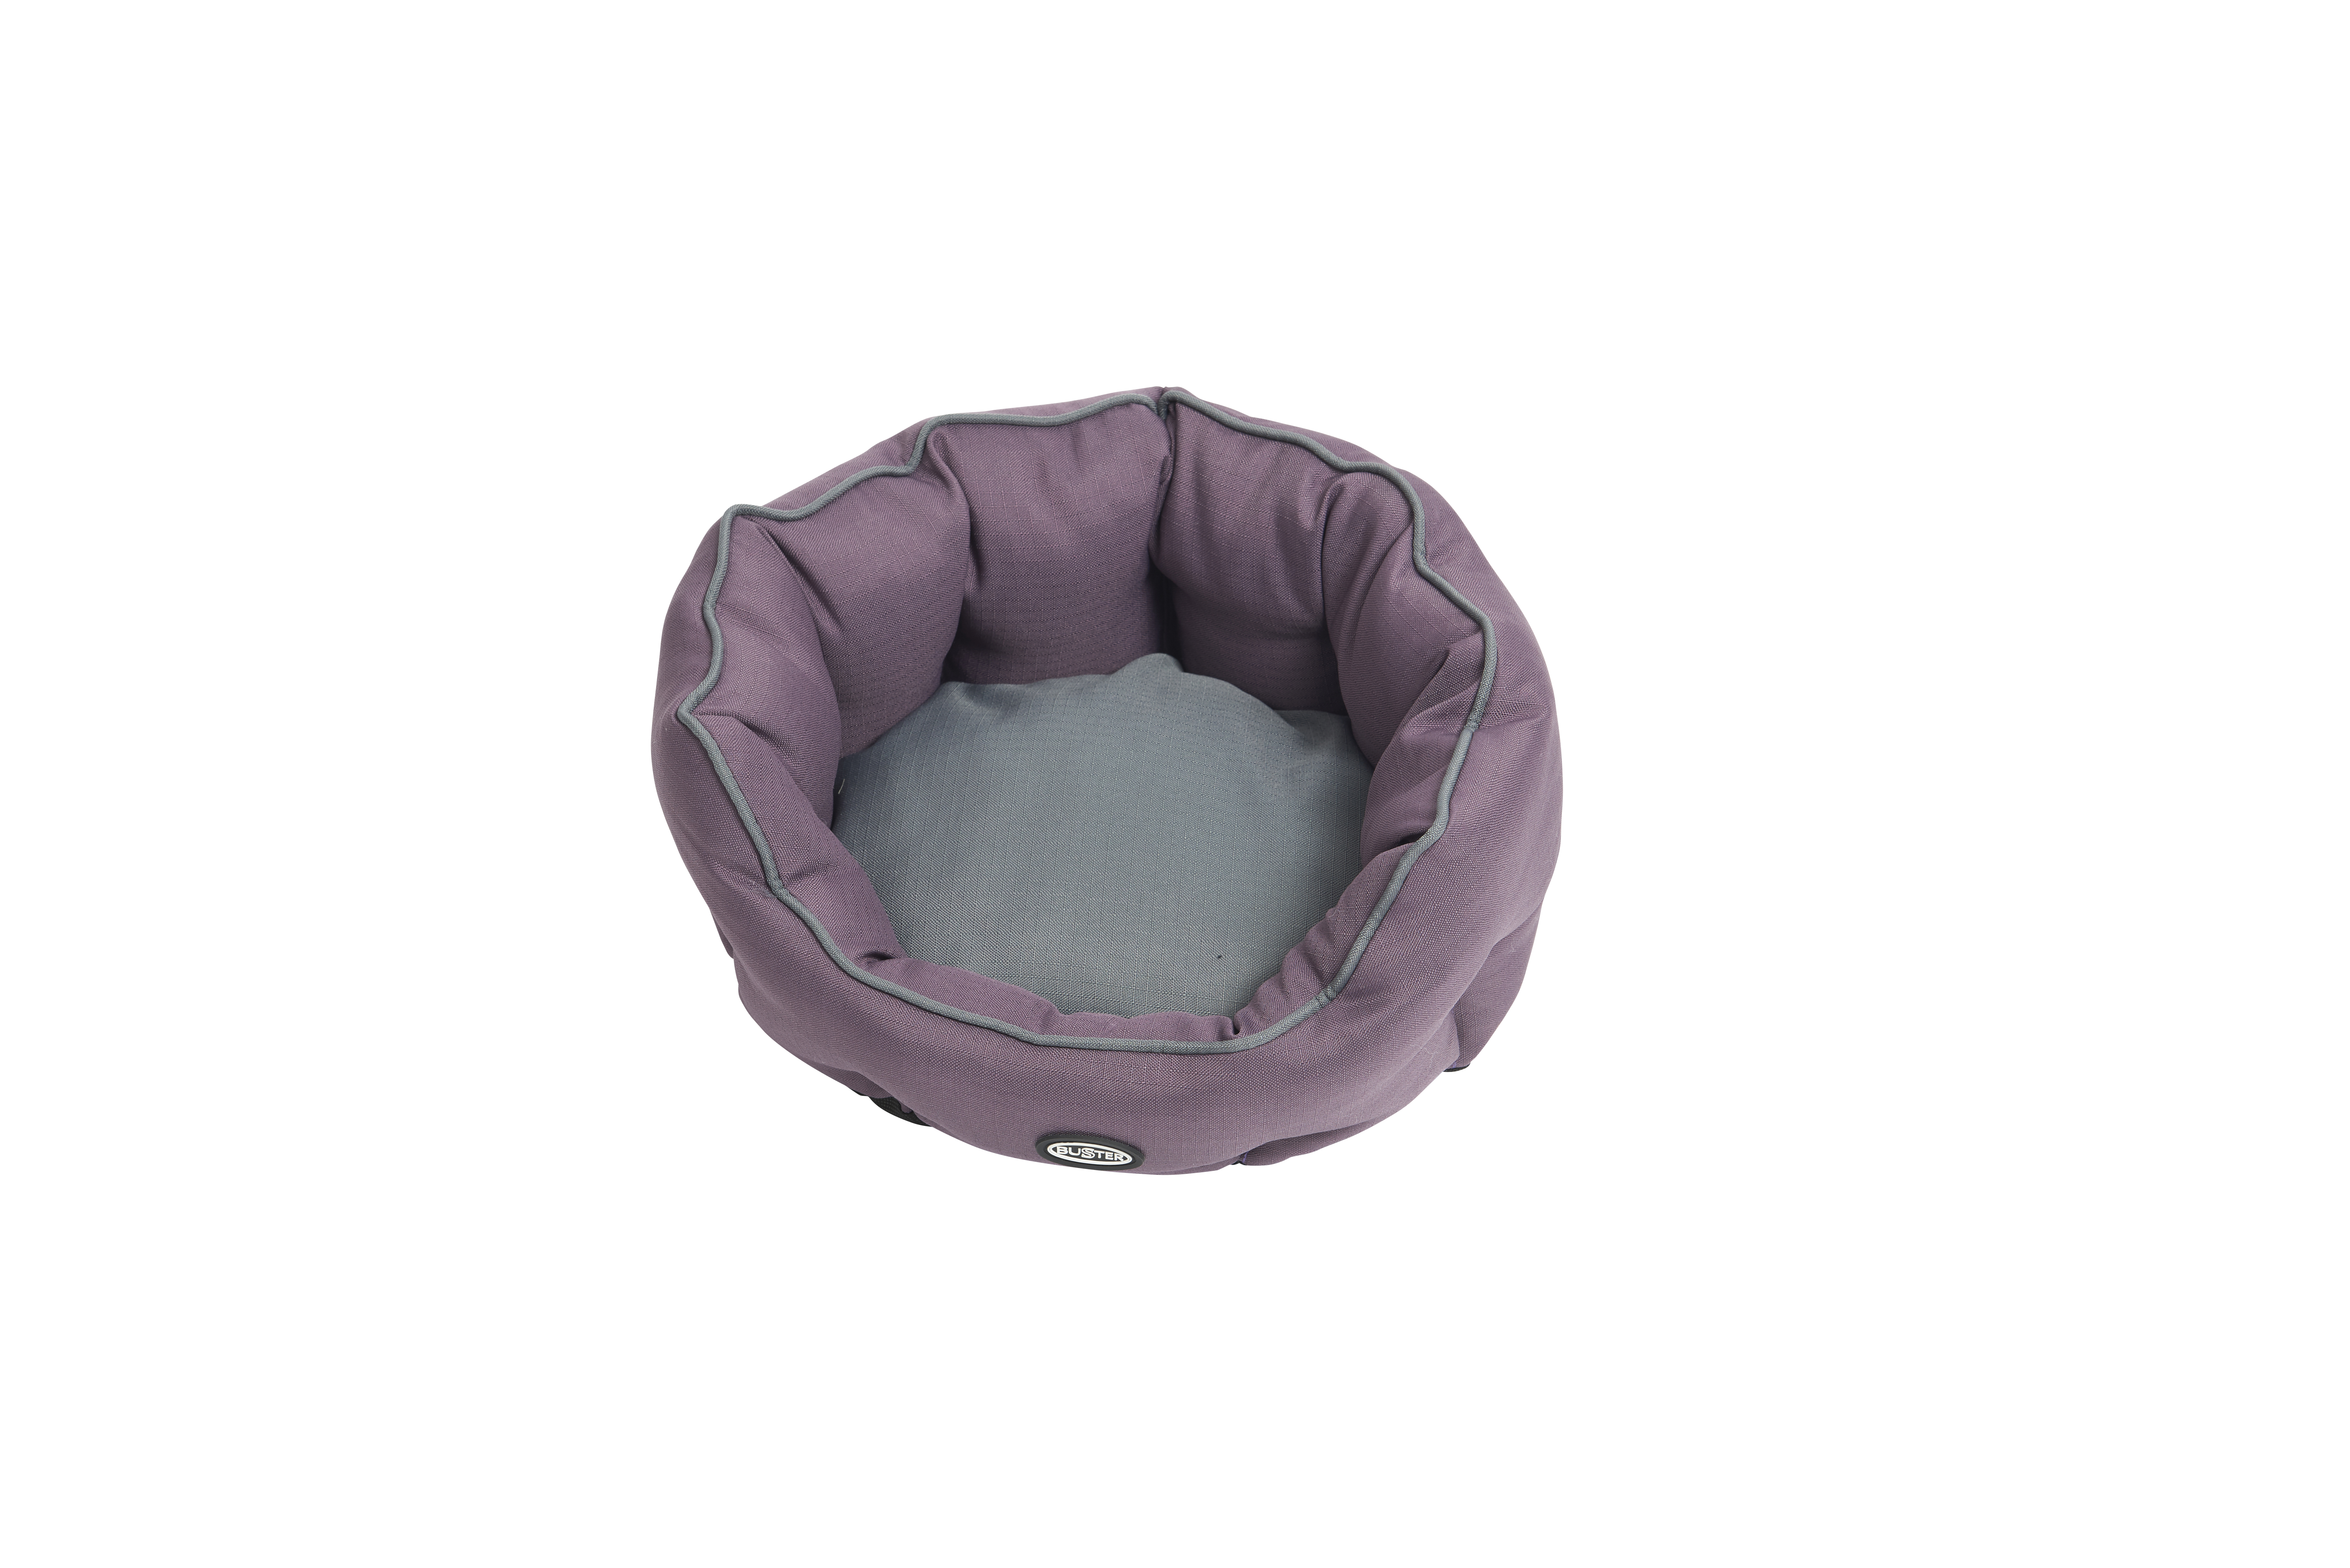 BUSTER Cocoon bed 65 cm, black plum/steel grey